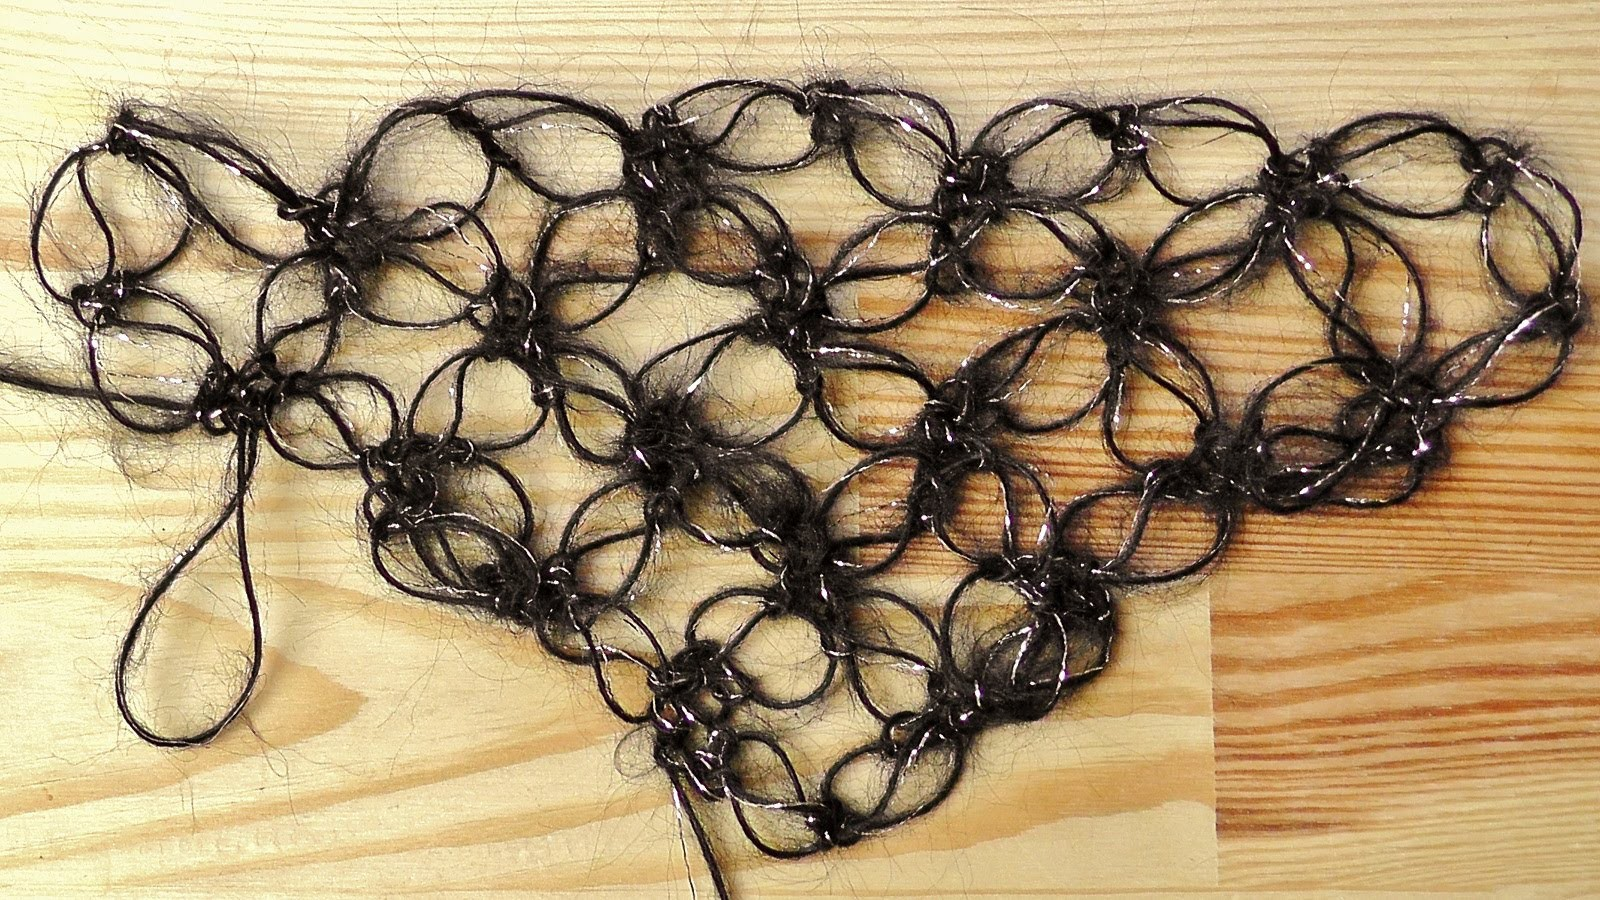 How to #crochet a solomon's knot shawl - Woolpedia